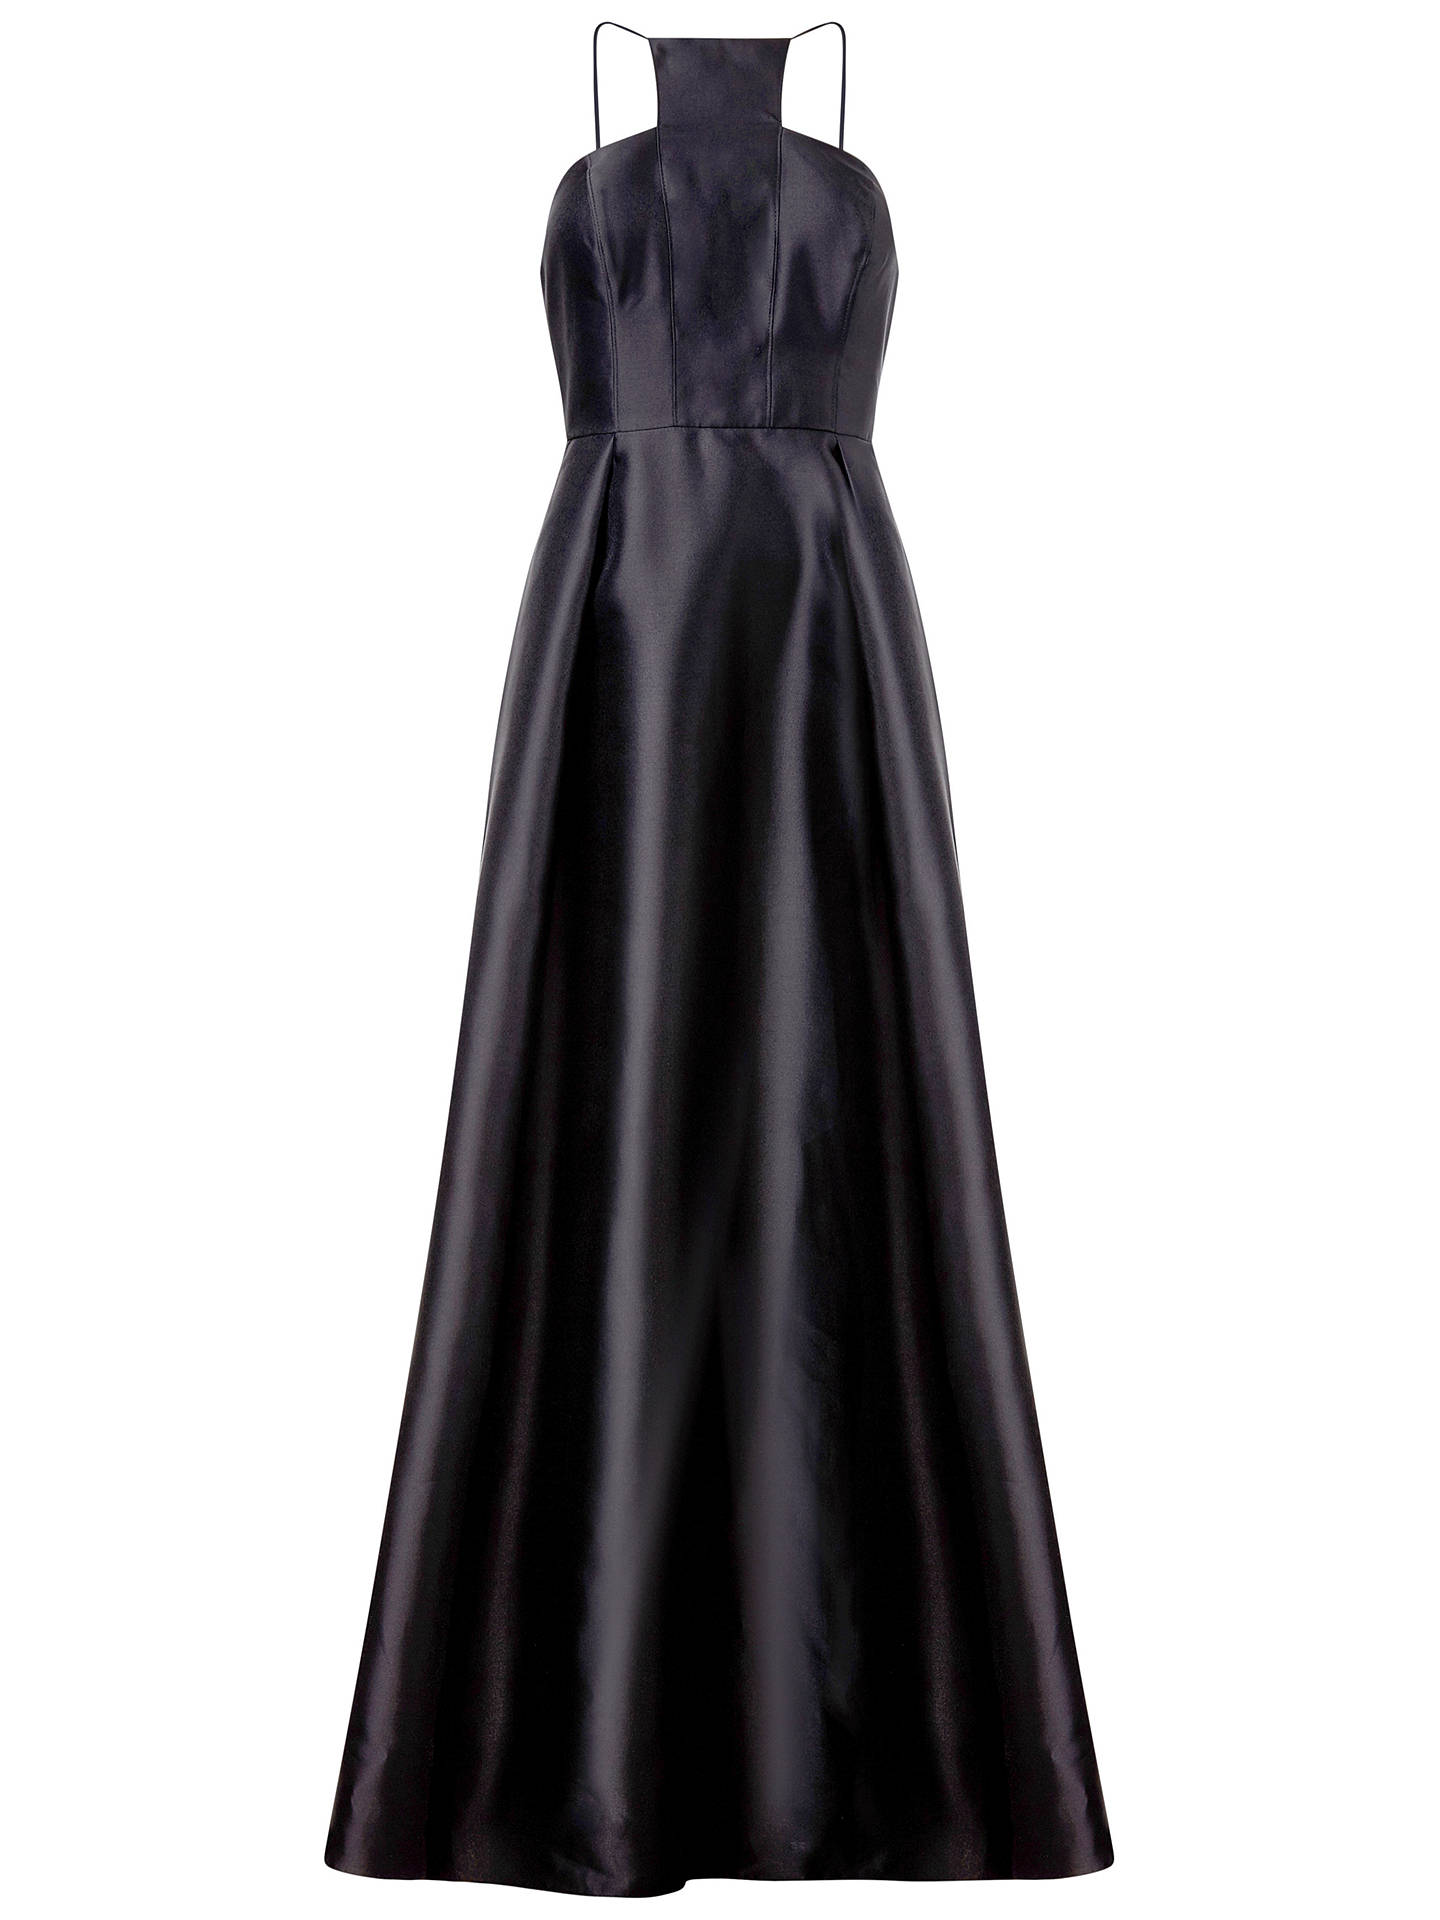 BuyAdrianna Papell Mikado Long Dress, Black, 10 Online at johnlewis.com